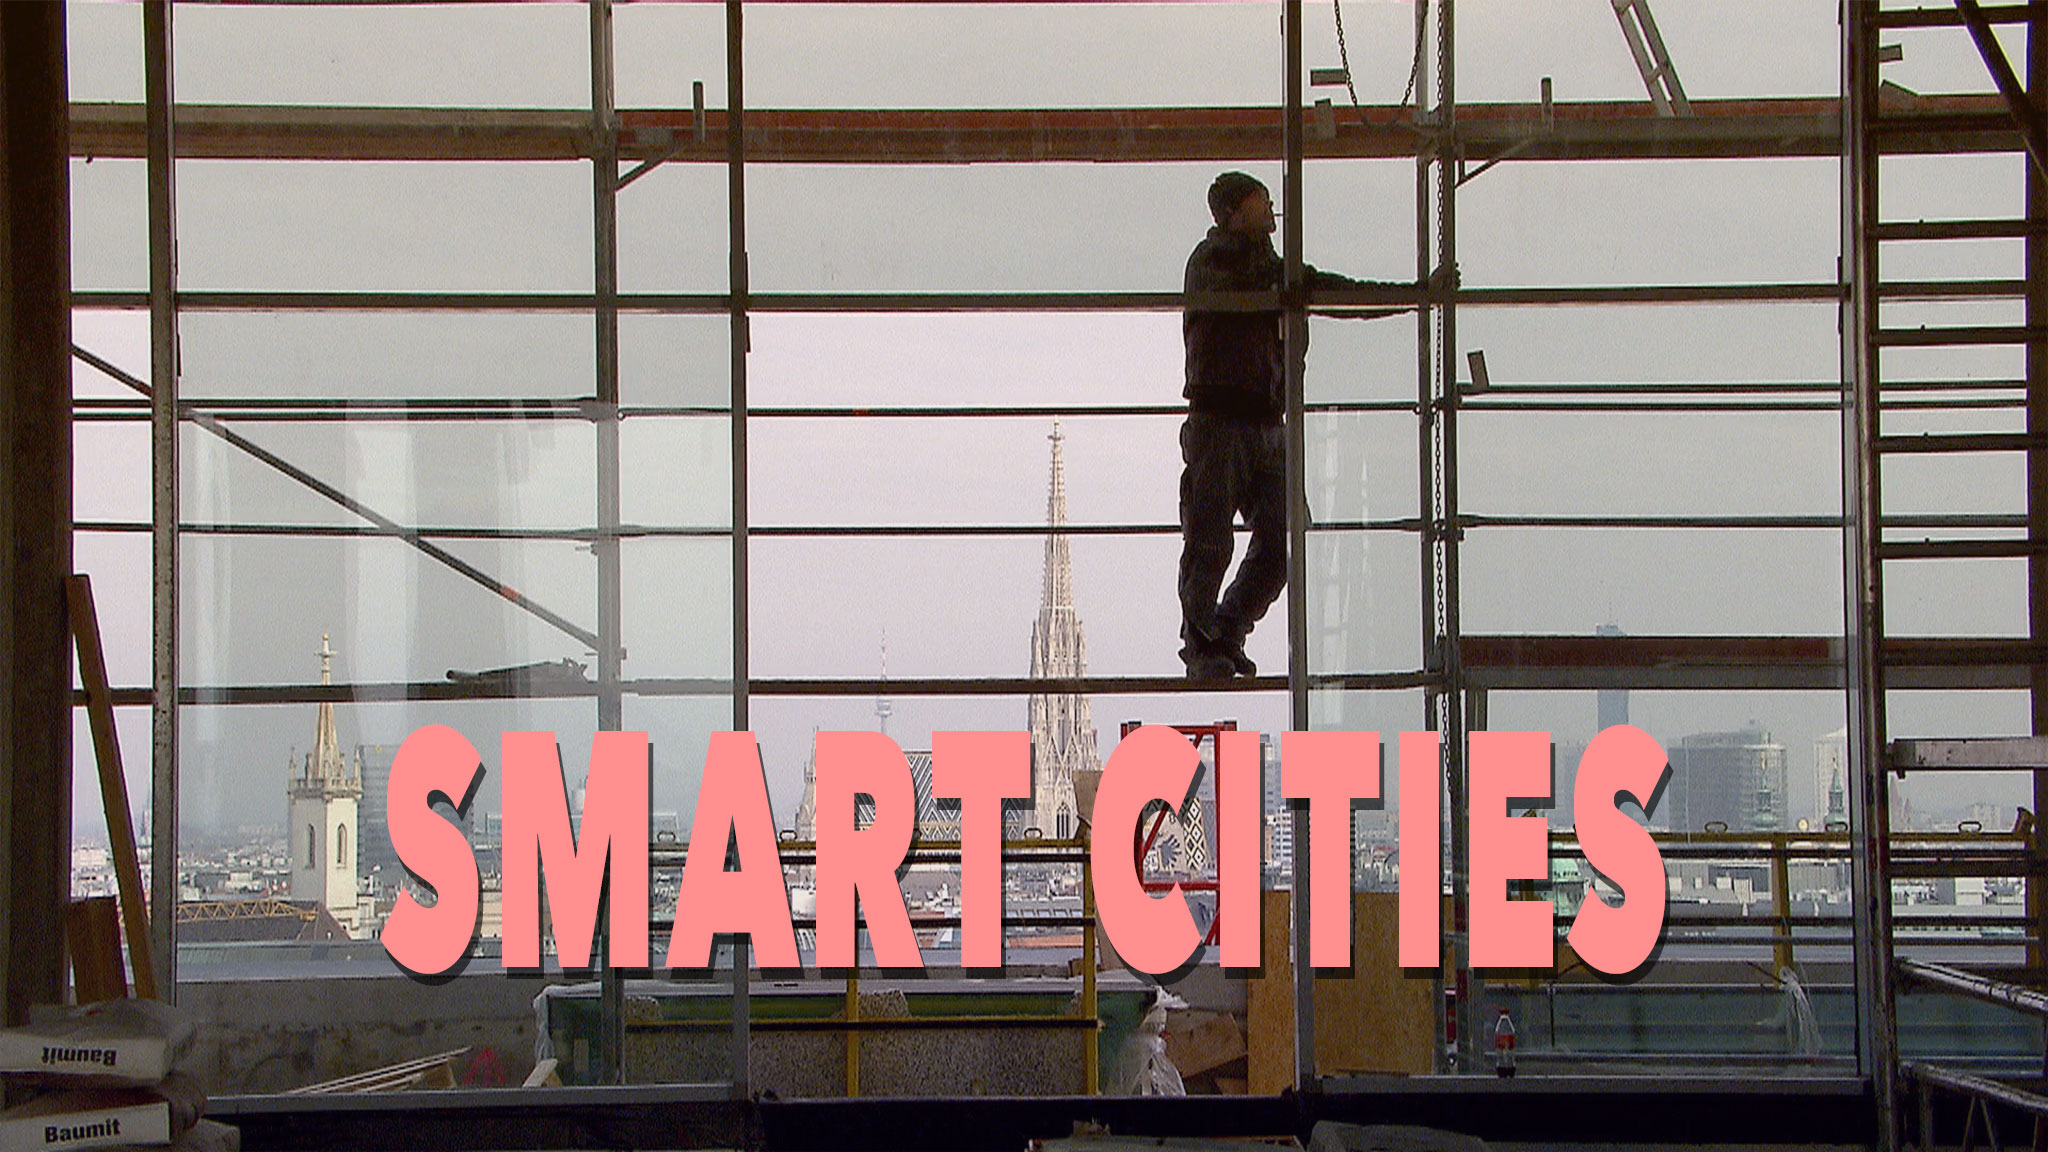 photo of a worker standing on scaffolding with a city scape view behind him acts as a link to Smart Cities film page